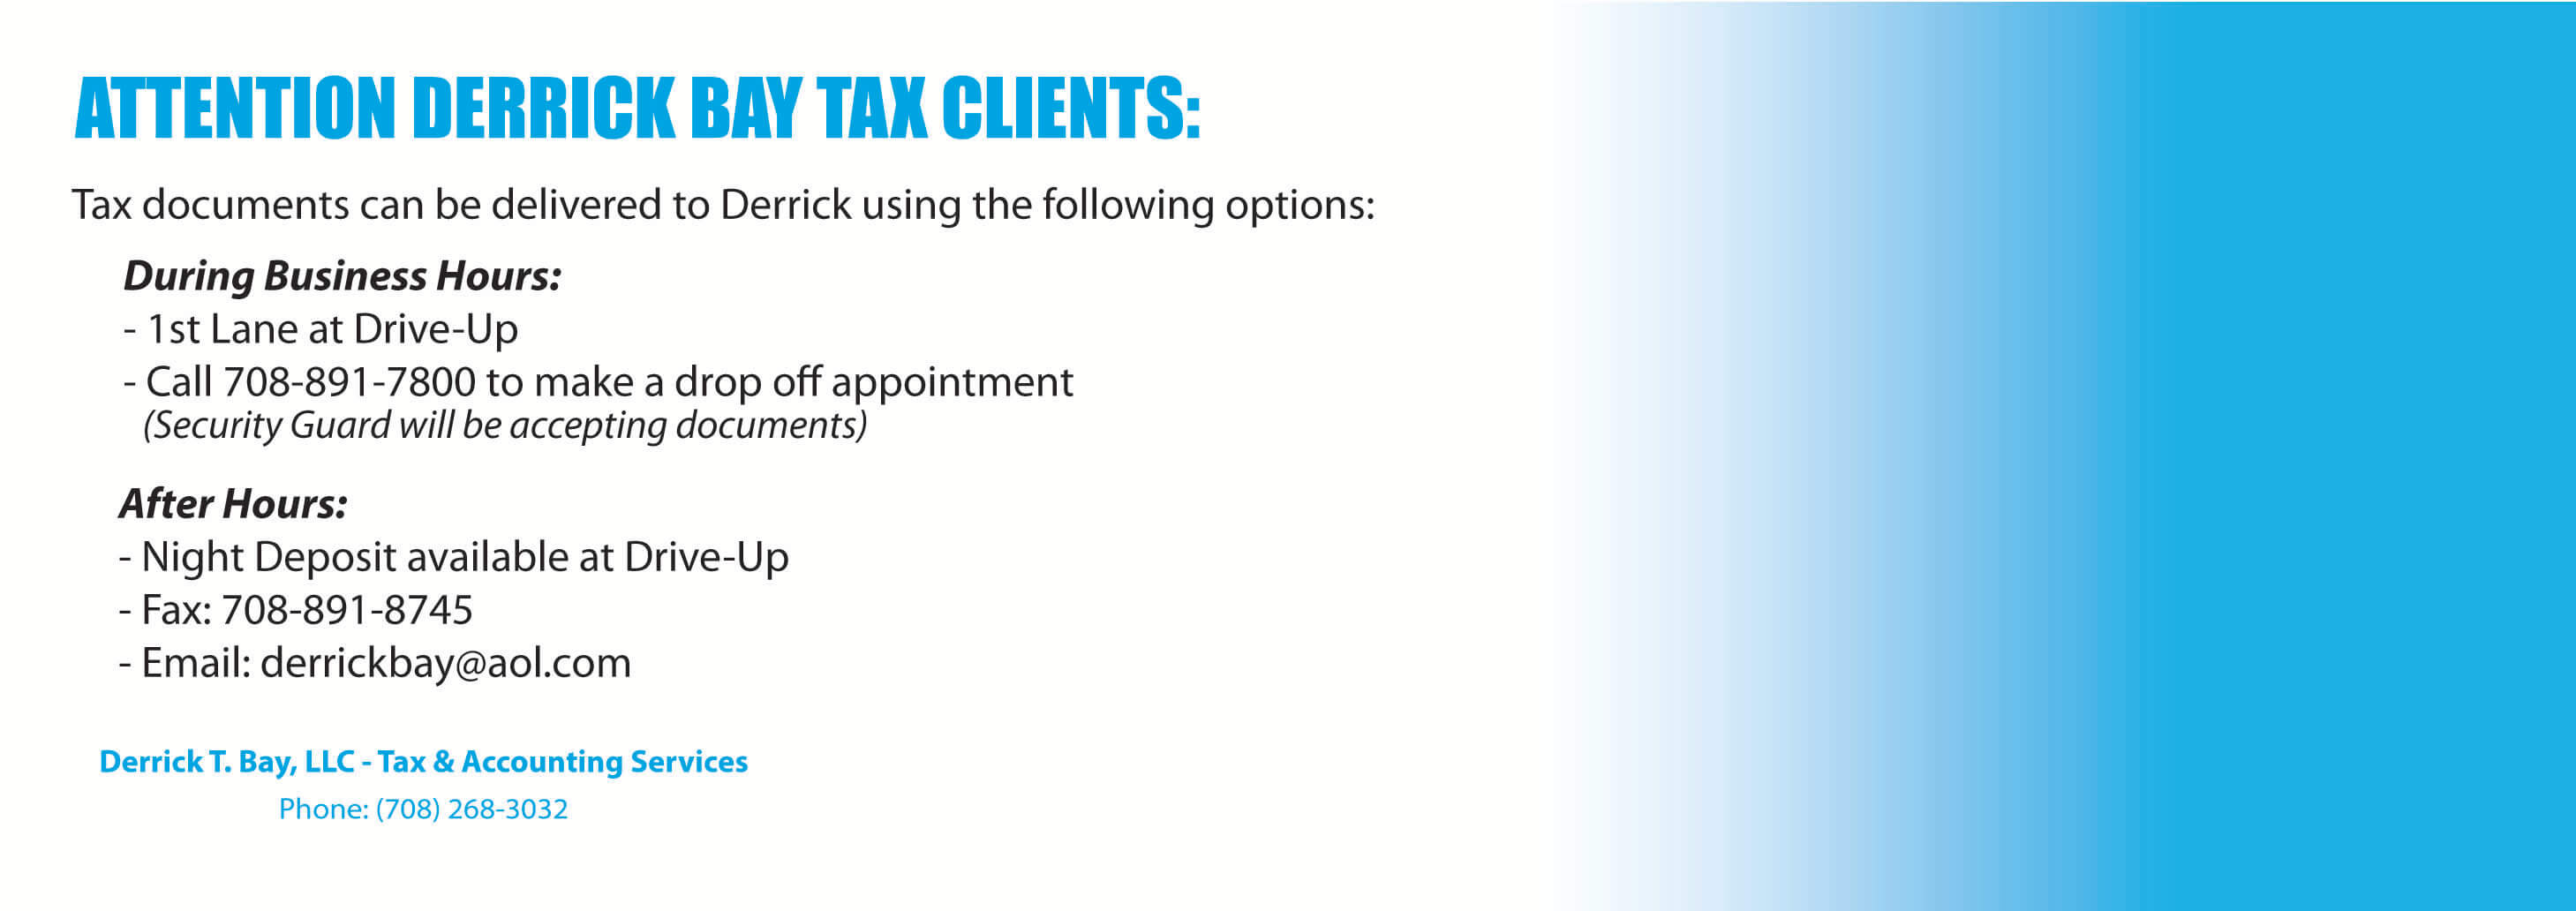 Attention Derrick Bay Tax Clients. Tax documents can be delivered to Derrik. More info.